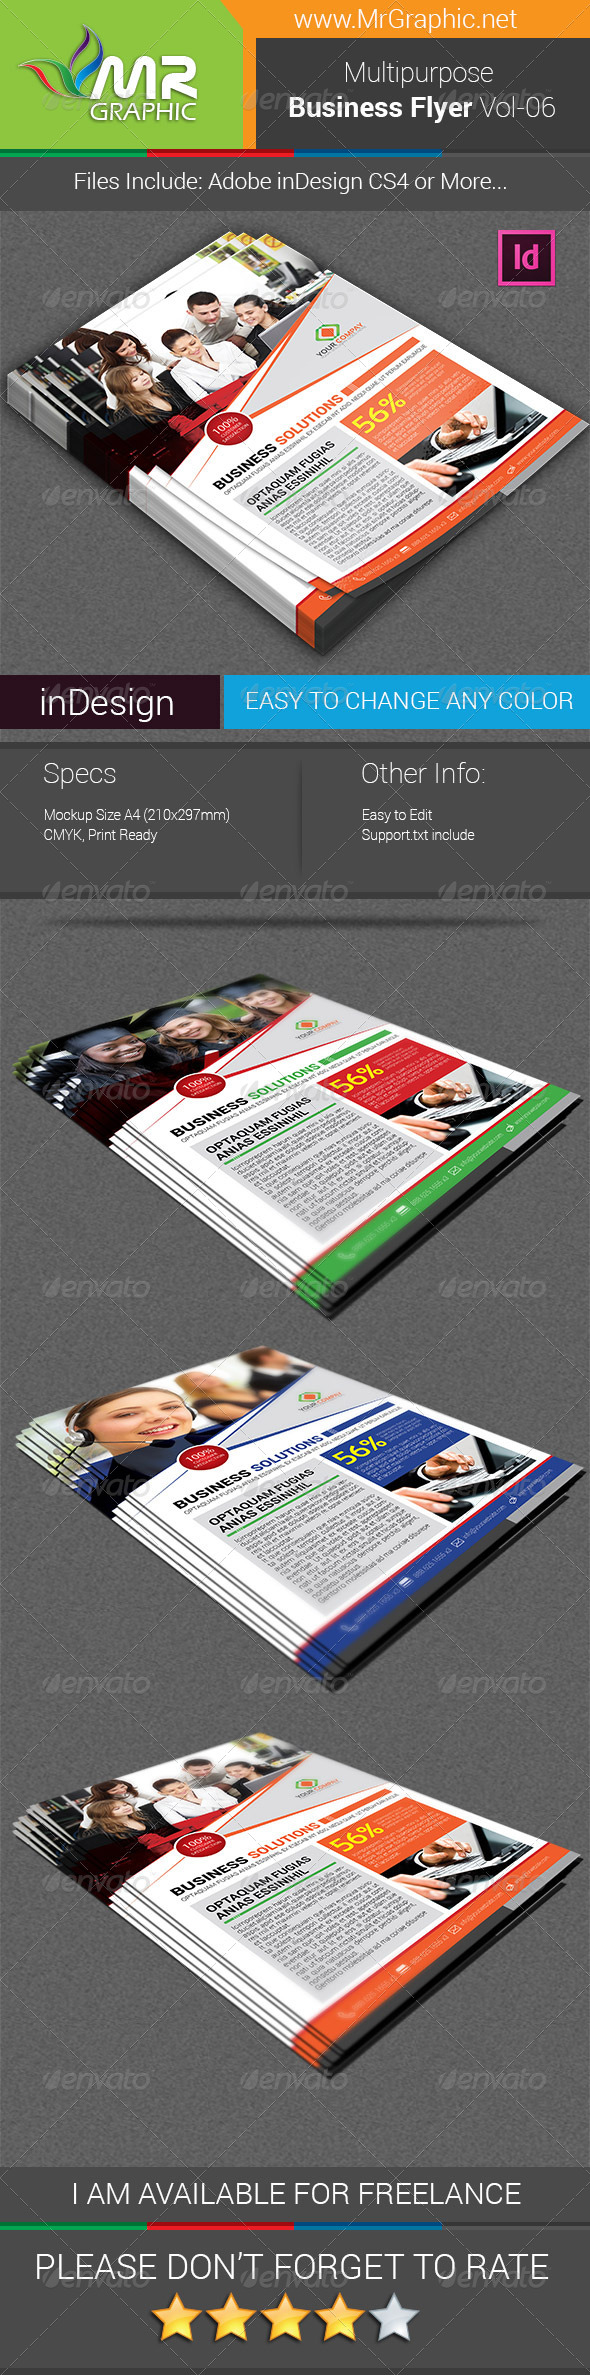 GraphicRiver Multipurpose Business Flyer Vol-06 6481064